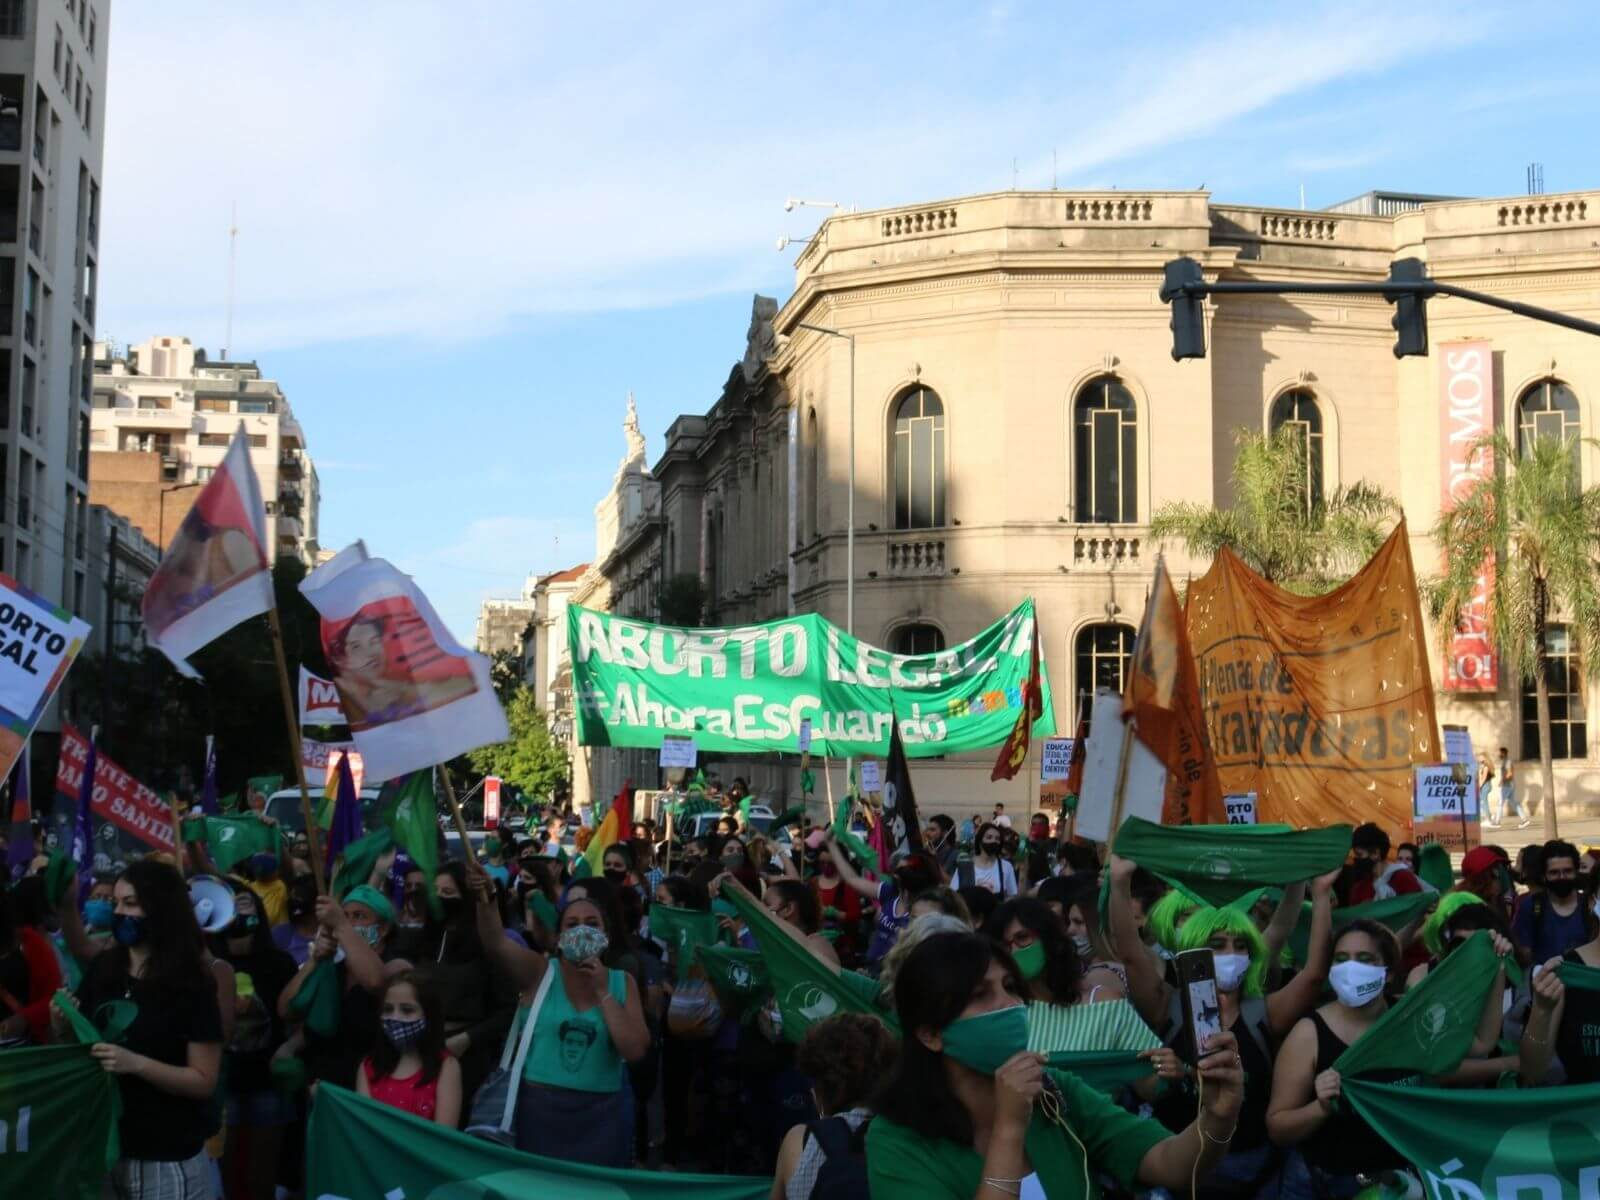 Aborto Legal: similitudes y diferencias entre los proyectos